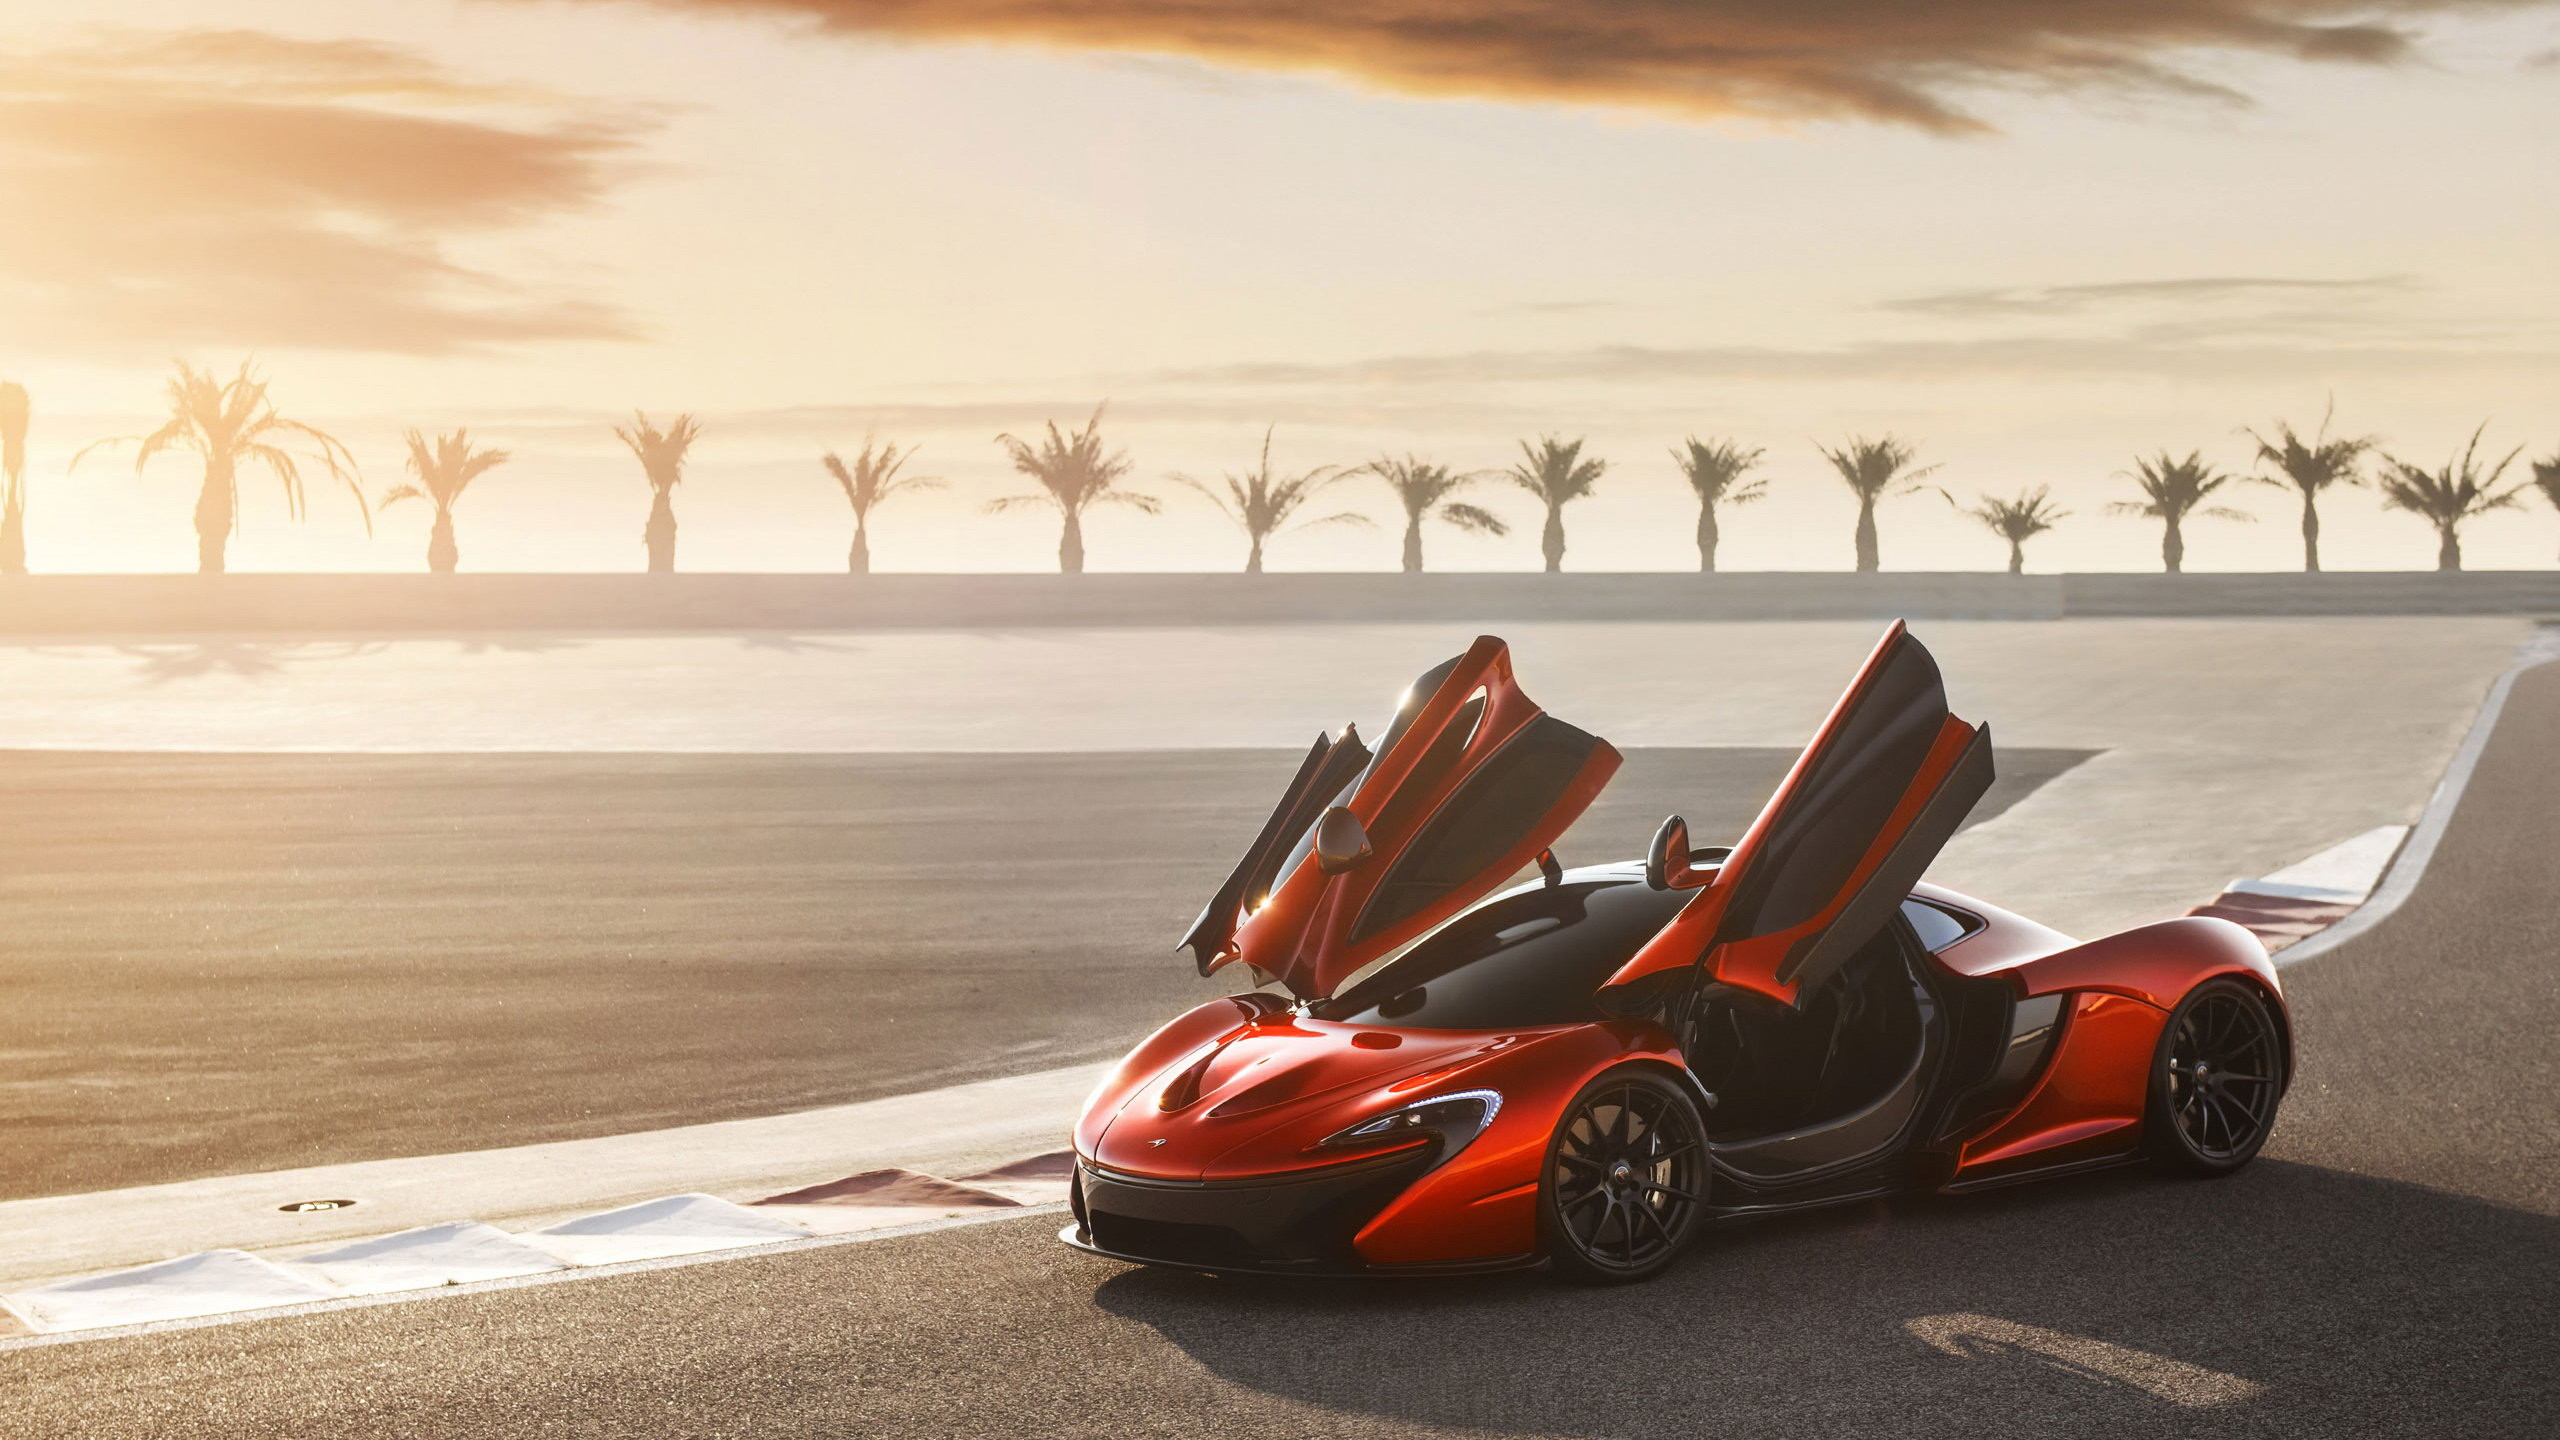 Res: 2560x1440, Fahrzeuge - McLaren P1 Non Autos Supercar Orange Car Wallpaper